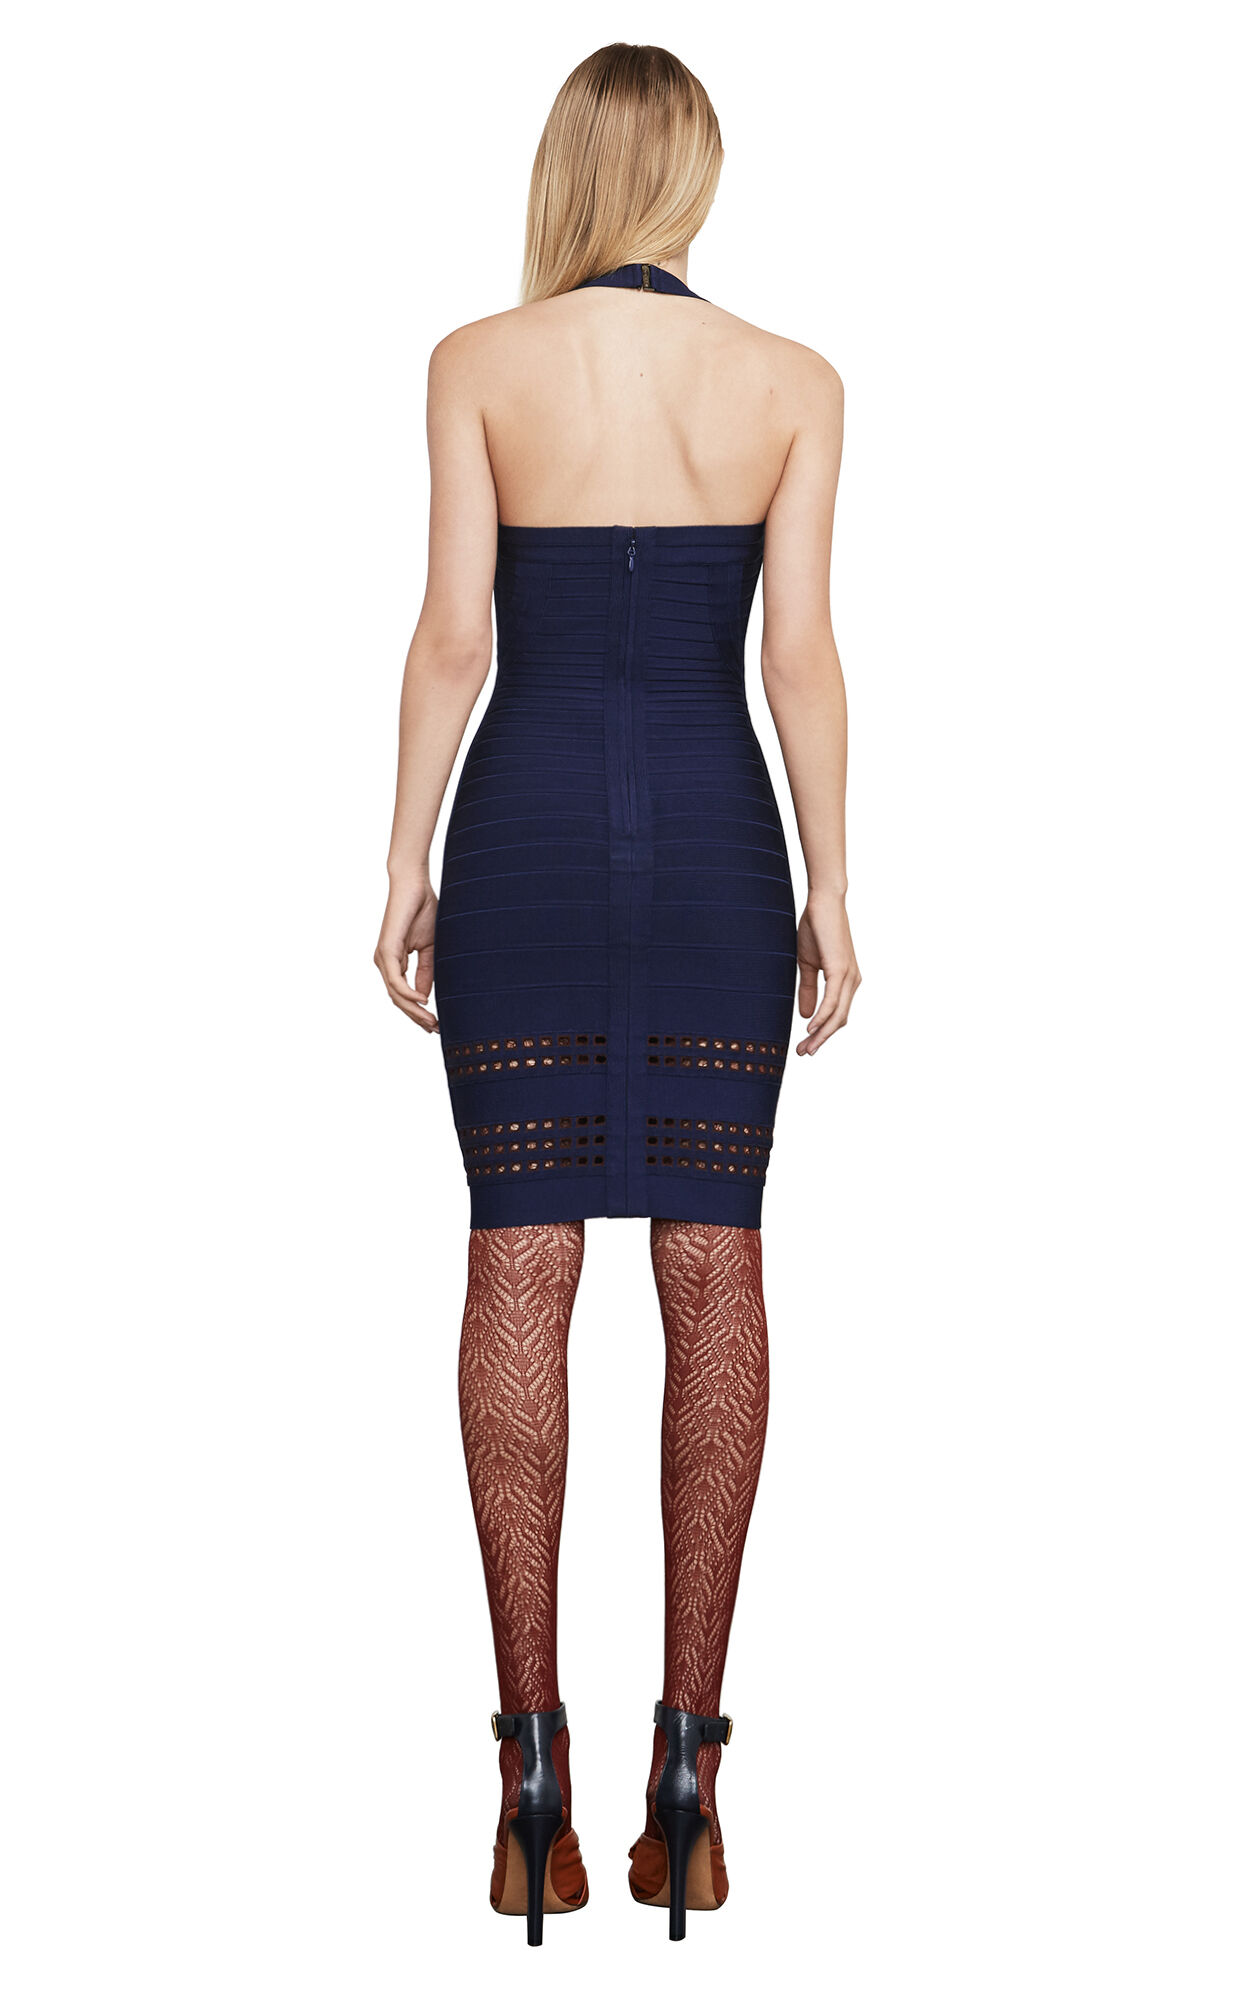 Jassalyn Geometric Bandage Dress